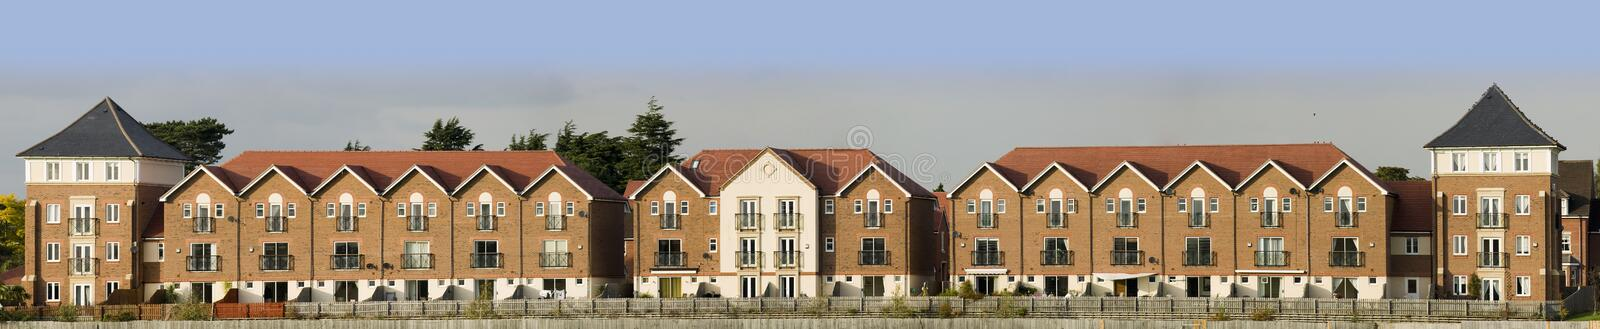 Racecourse. New housing and flats stratford upon avon warwickshire england uk royalty free stock images